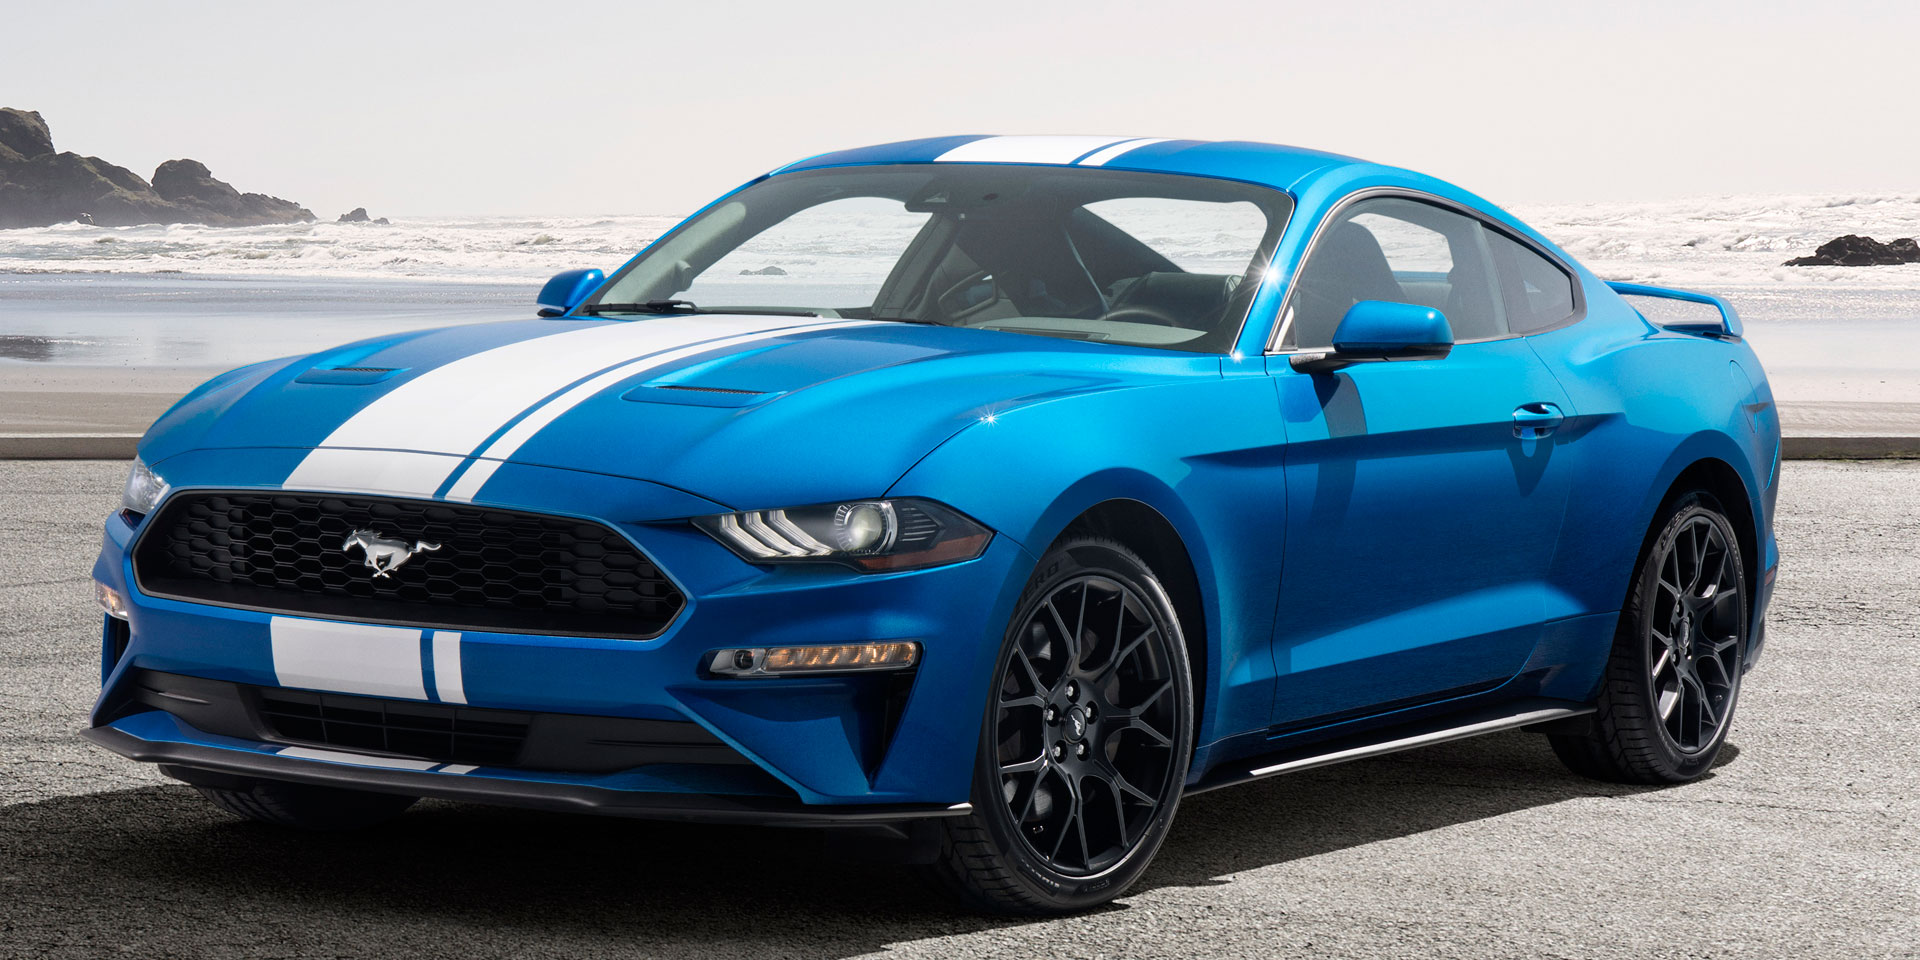 2019 ford mustang the 2019 ford mustang is a 4 seat sports car thats available as a 2 door coupe and convertible only rear wheel drive models are